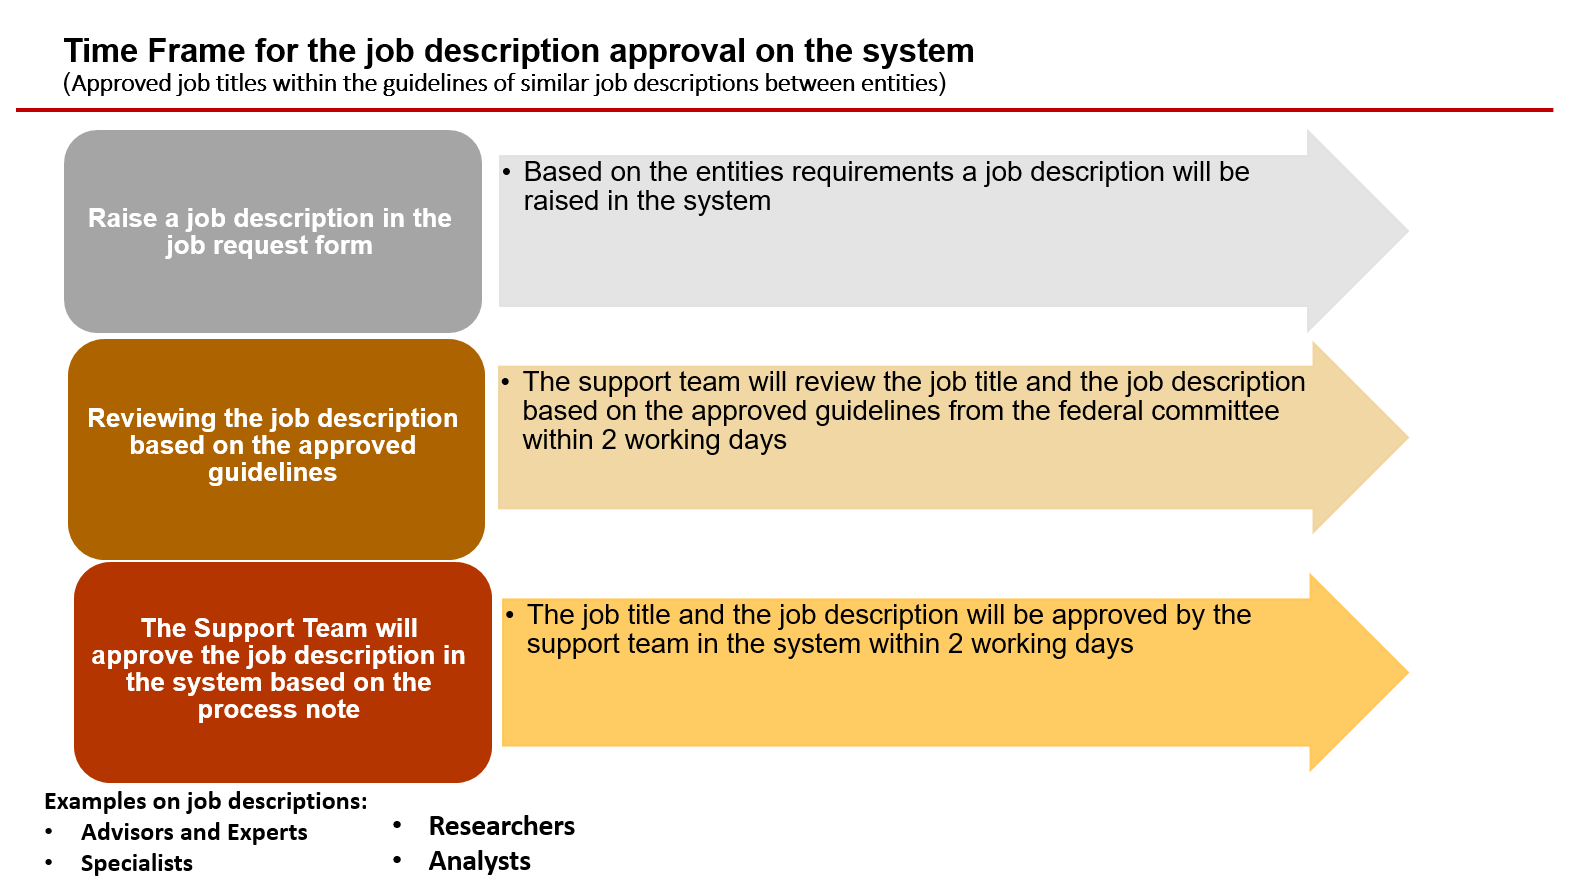 Time Frame for the job description approval on the system(Approved job titles within the guidelines of similar job descriptions between entities)